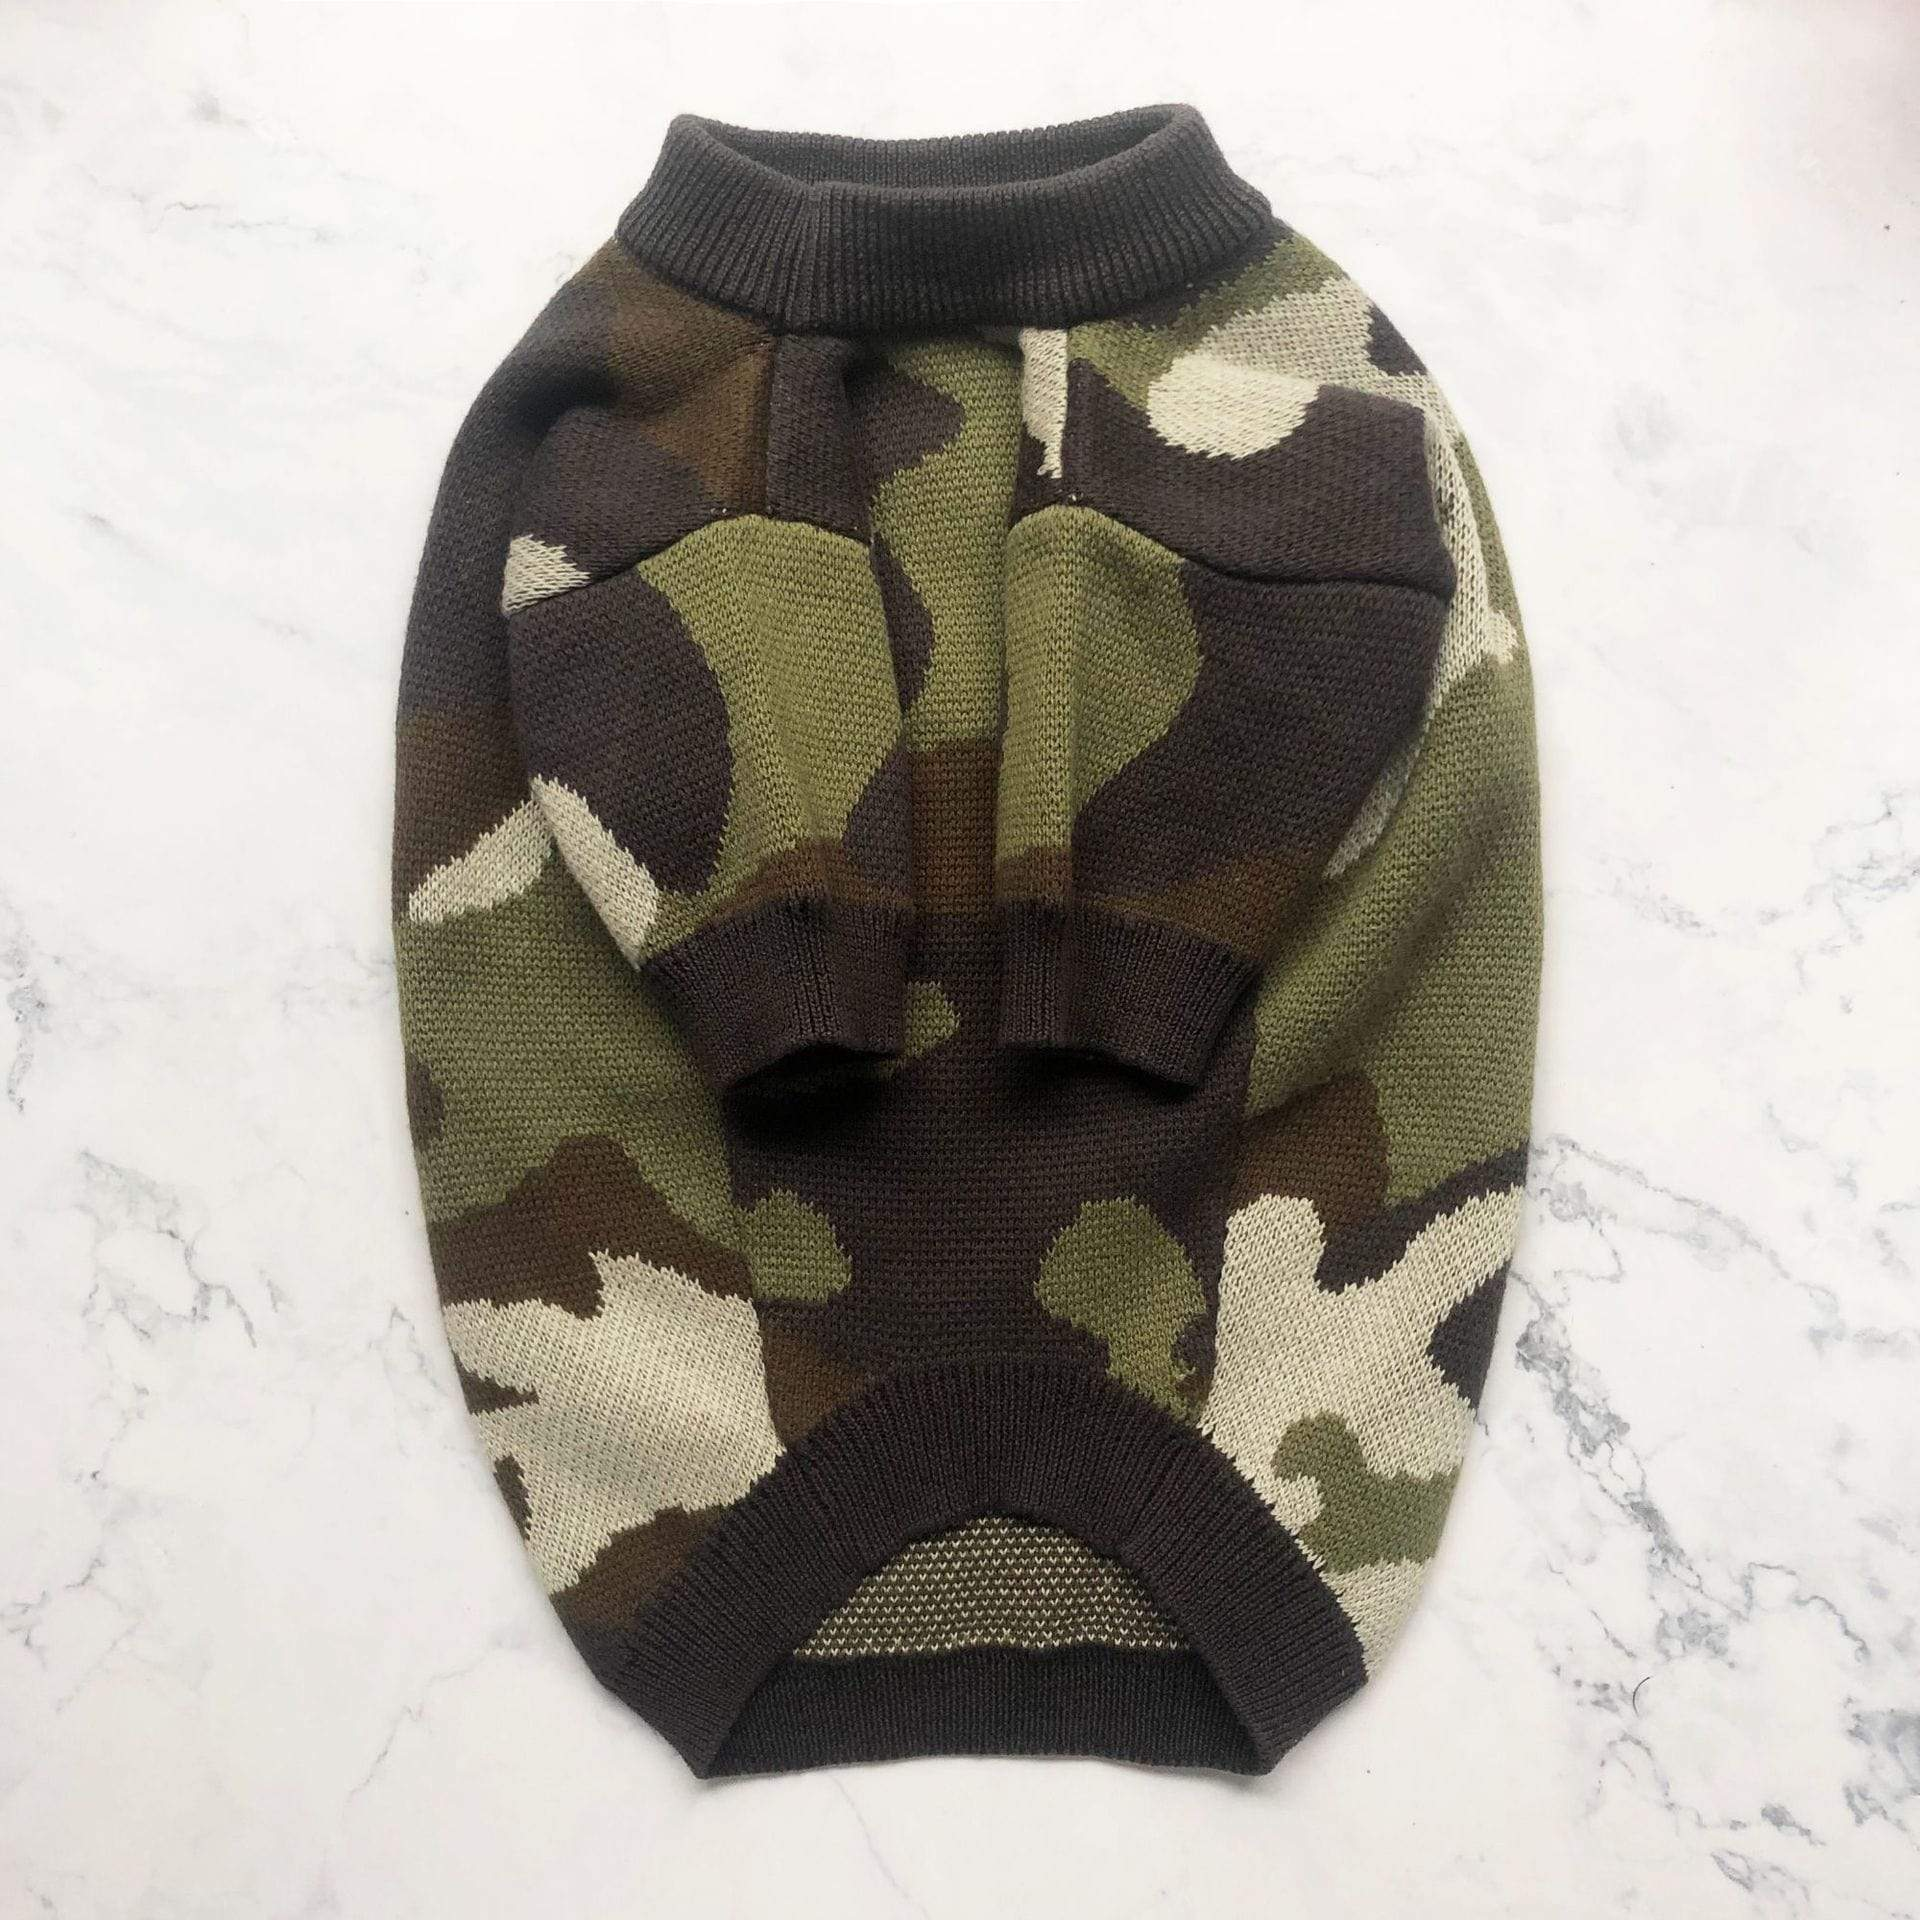 Frenchie World Shop Frenchie Camo Knitted Sweater